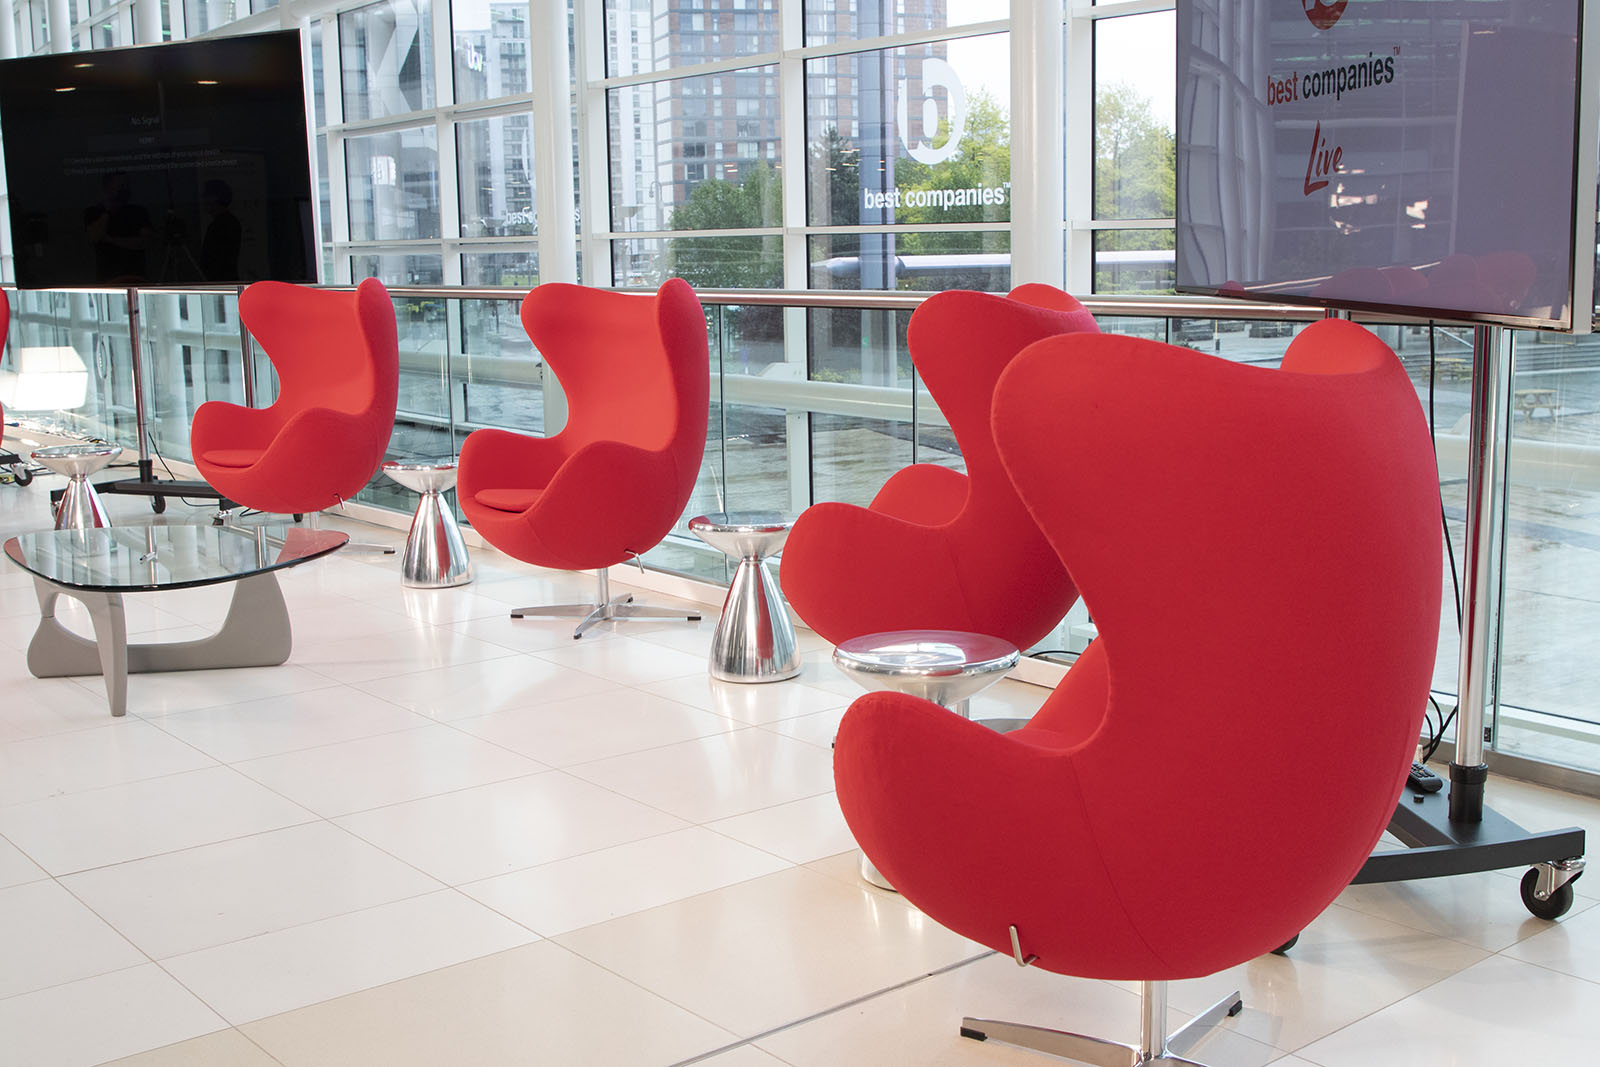 Four red chairs on the set of Best Companies Live at Media City UK